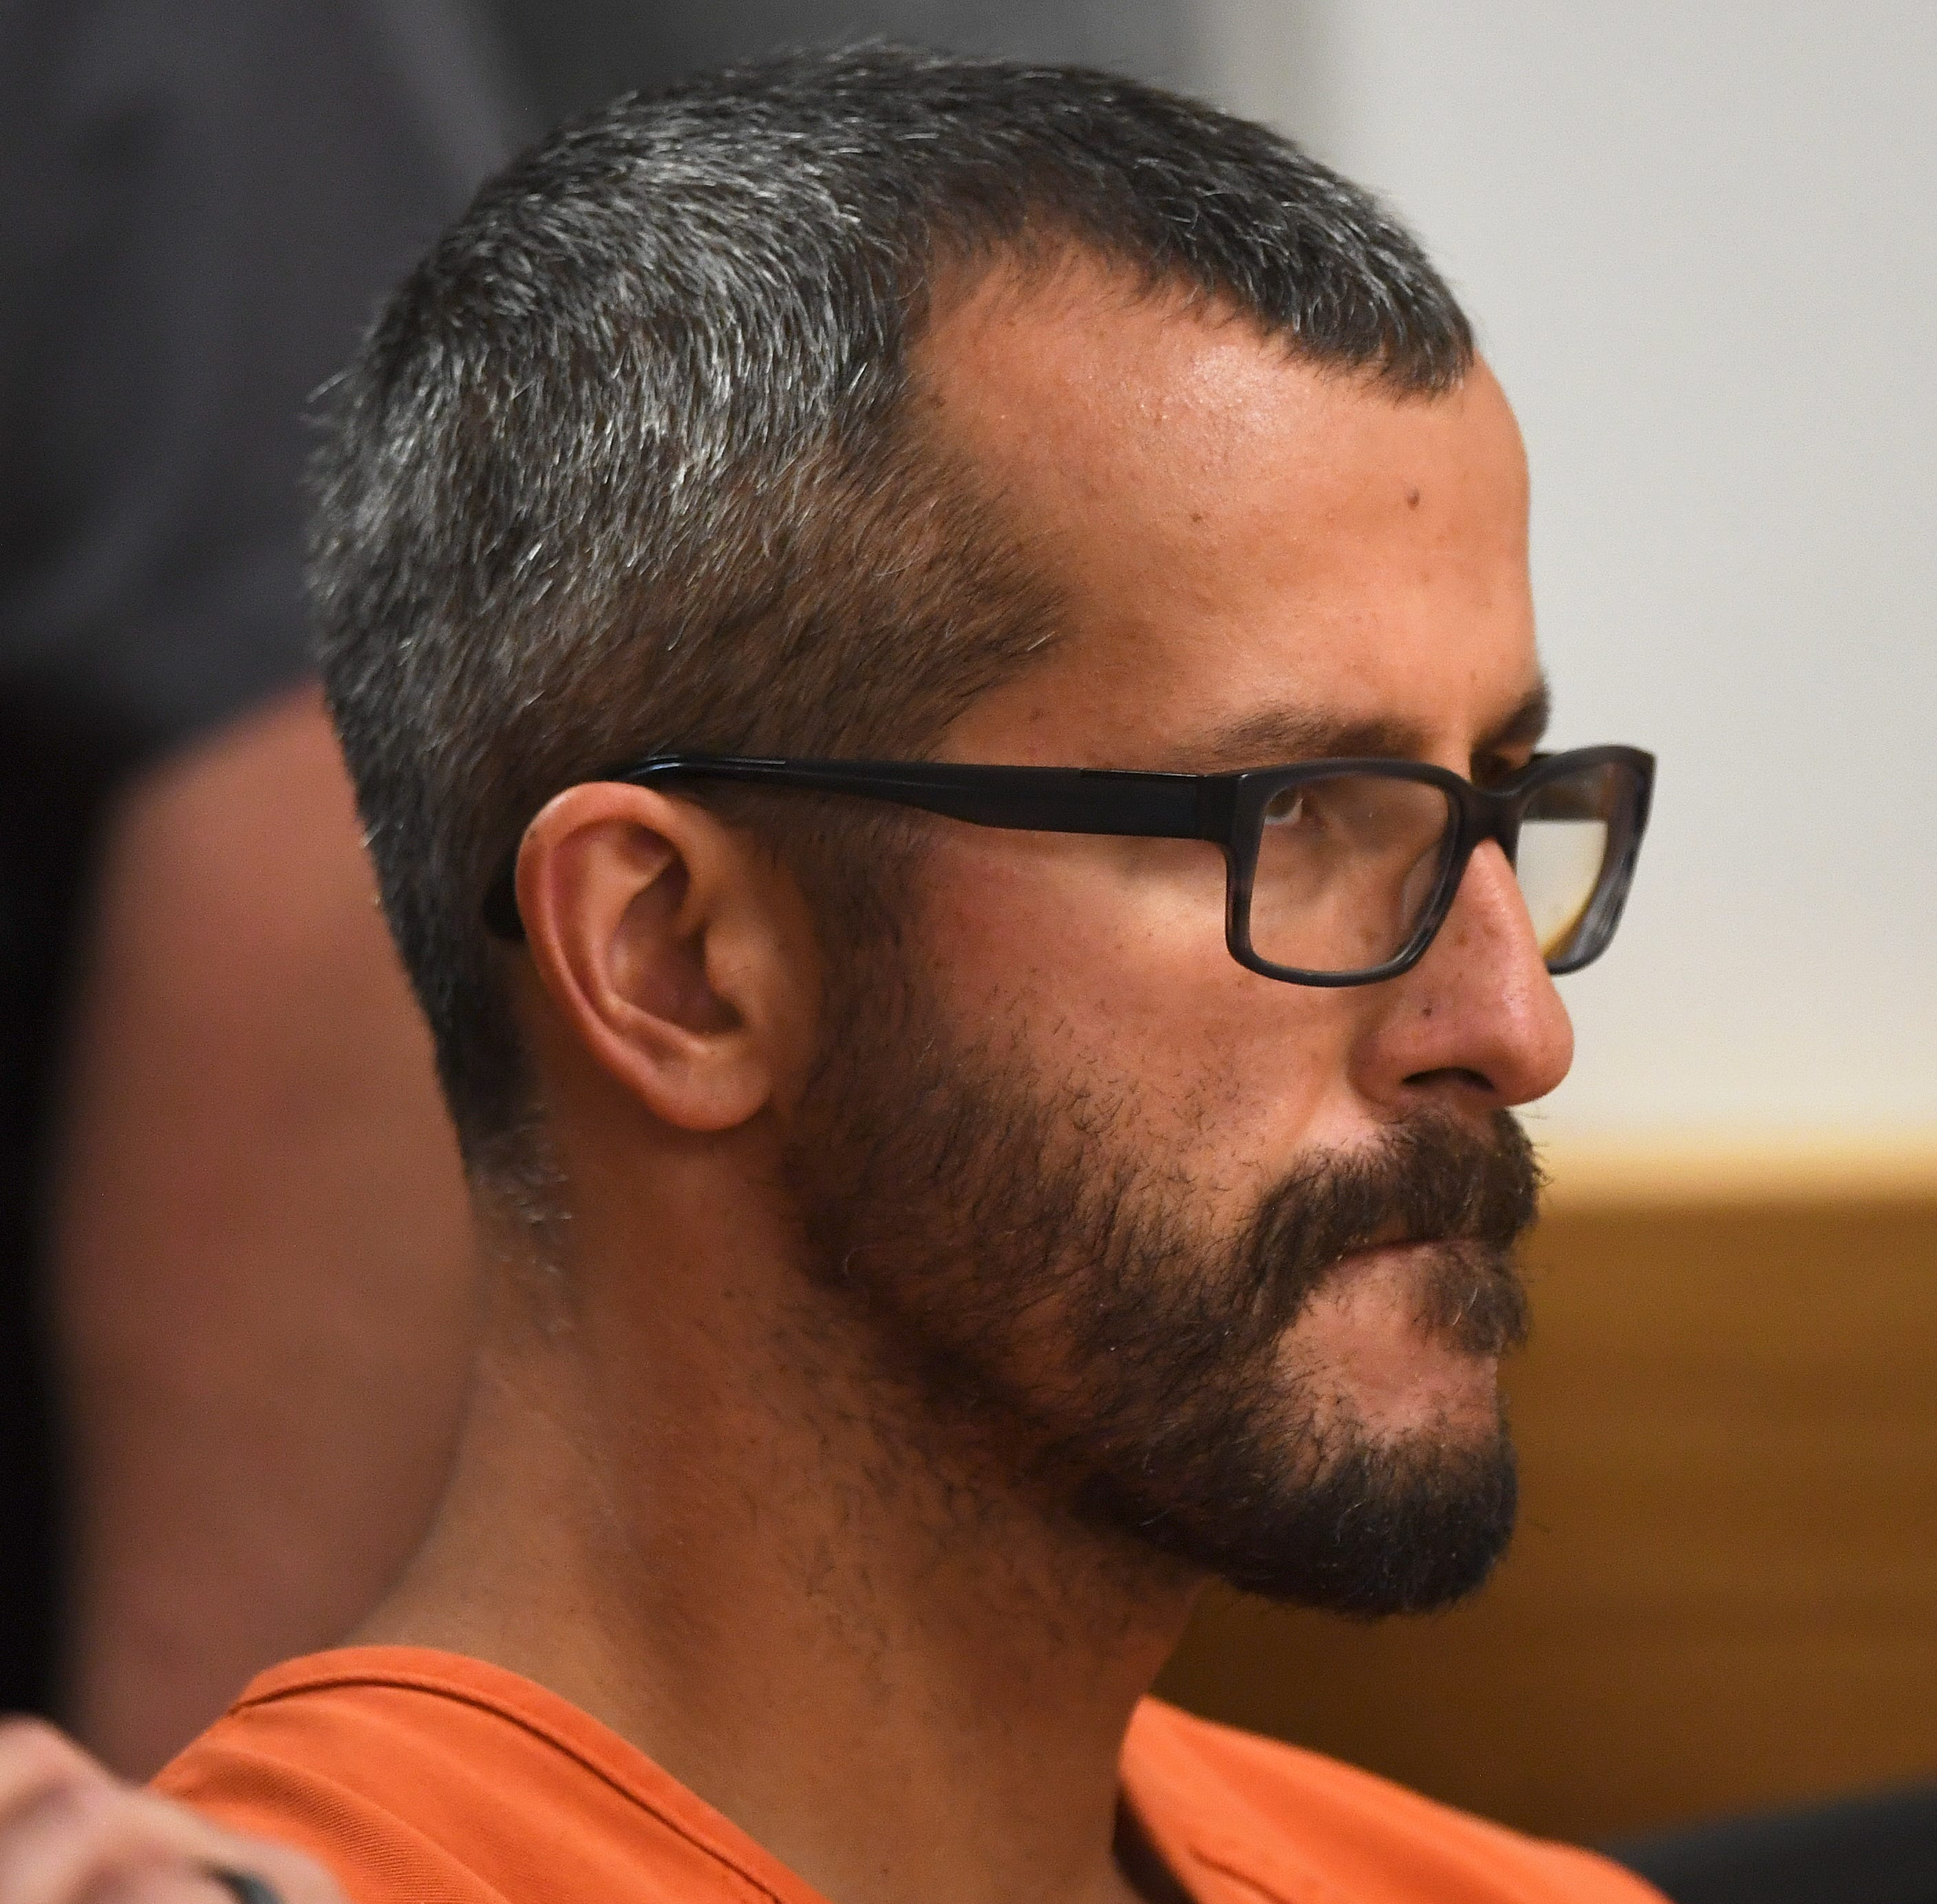 Colorado dad scheduled to be sentenced for the murder of Shanann Watts, 2 children